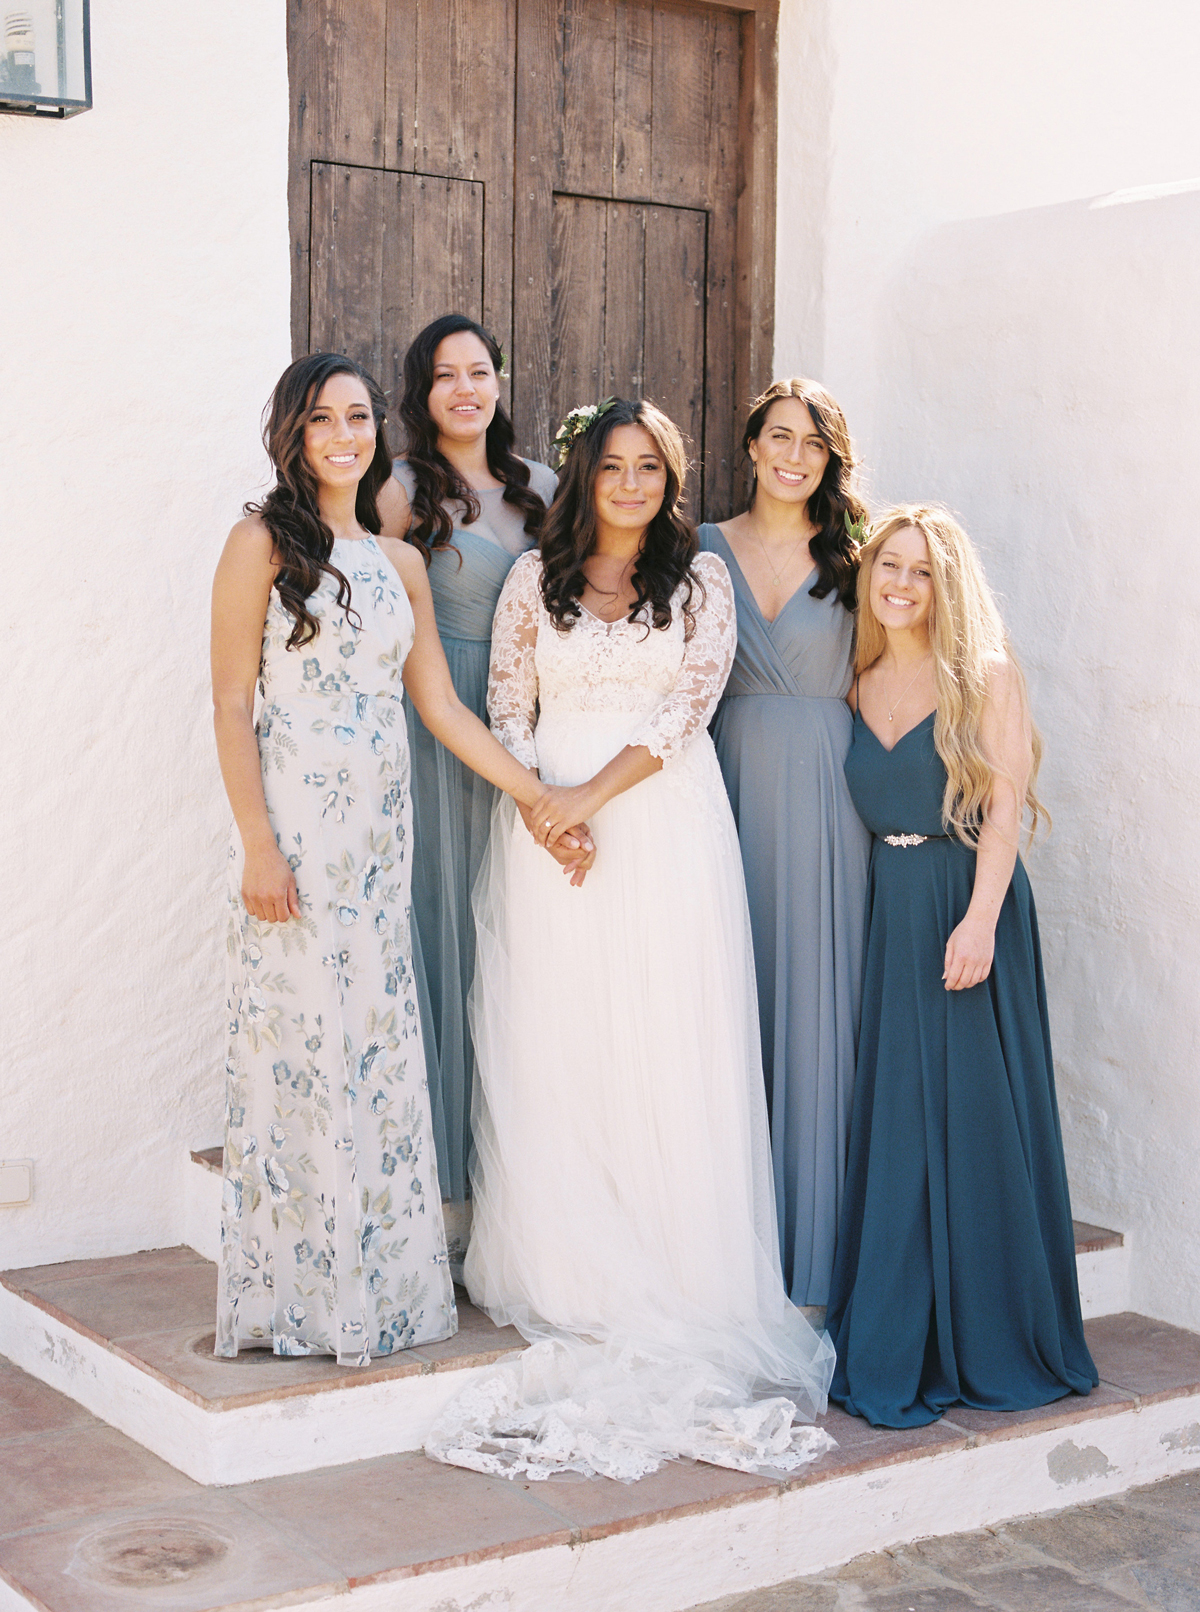 Should Your Bridesmaids' Gowns Be as Formal as Your Wedding Dress?